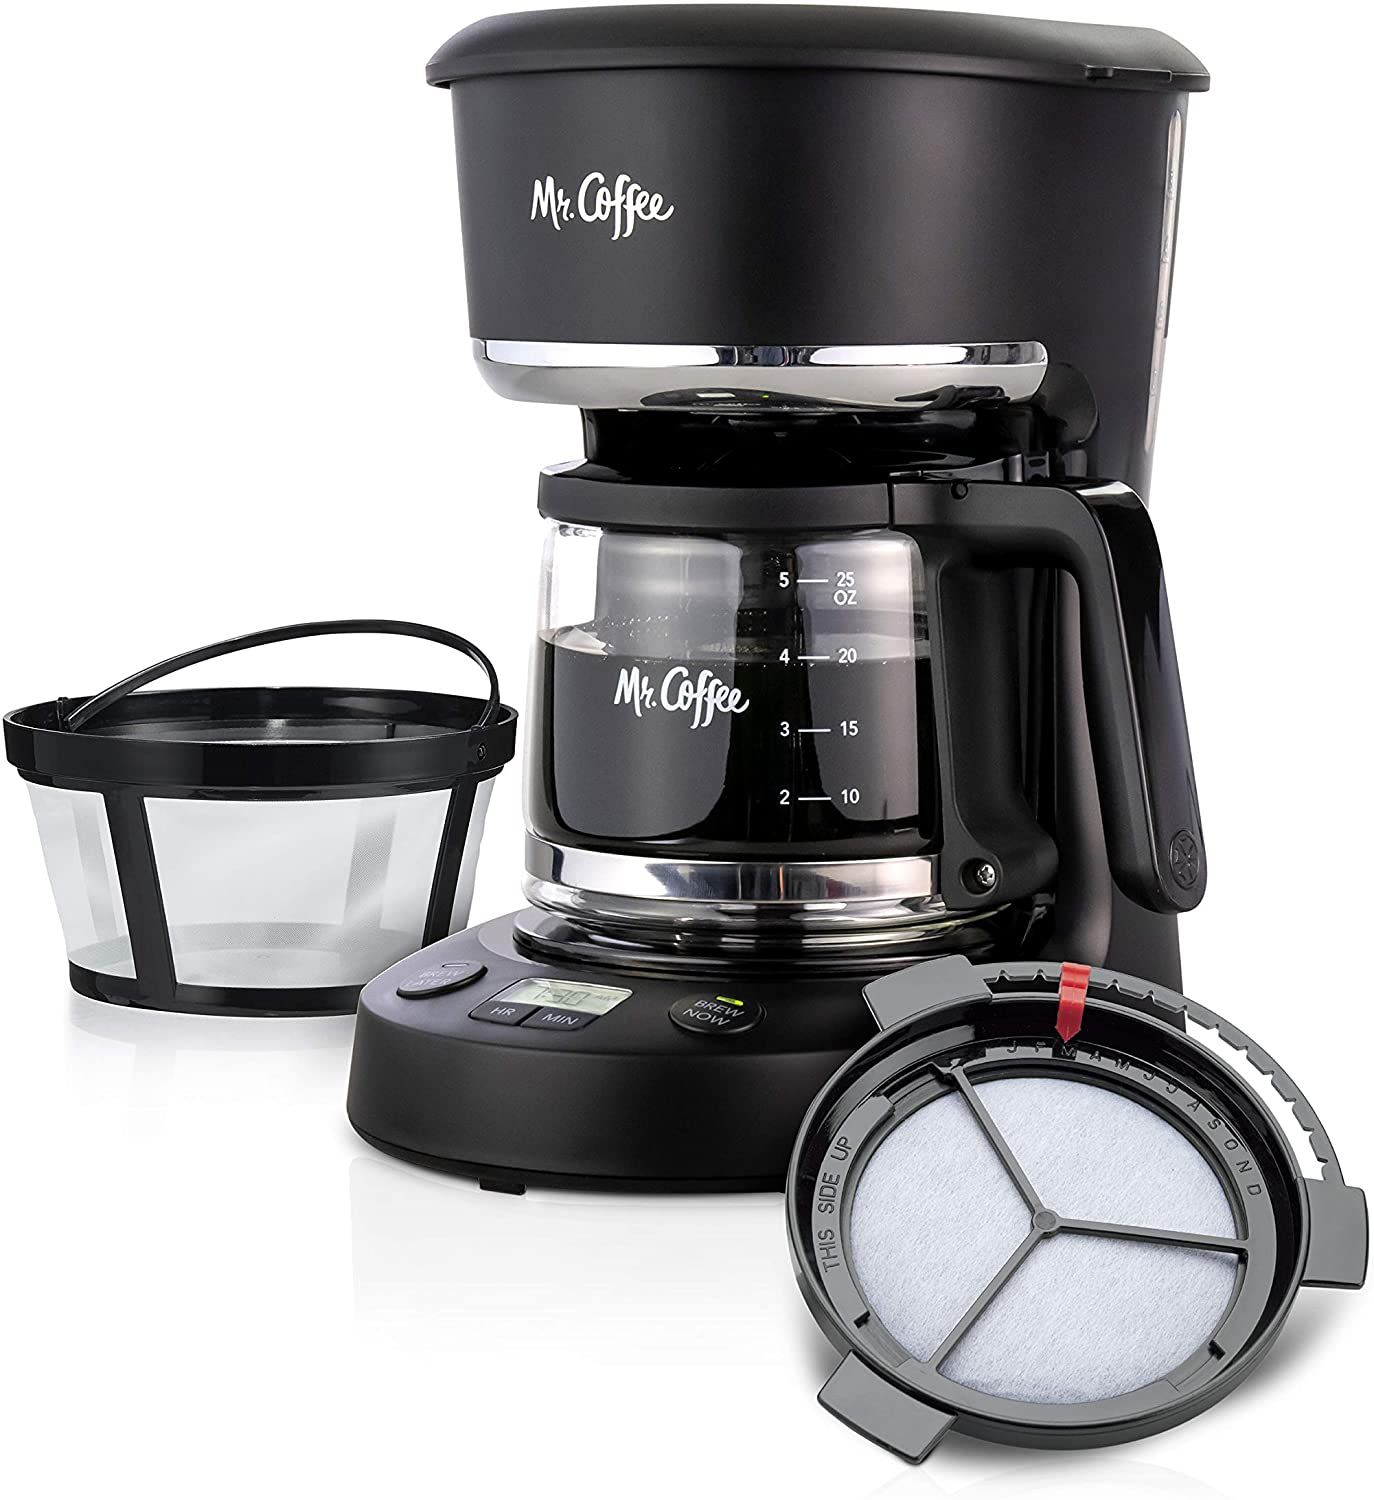 Mr. Coffee Programmable Brew Now or Later Coffee Maker in